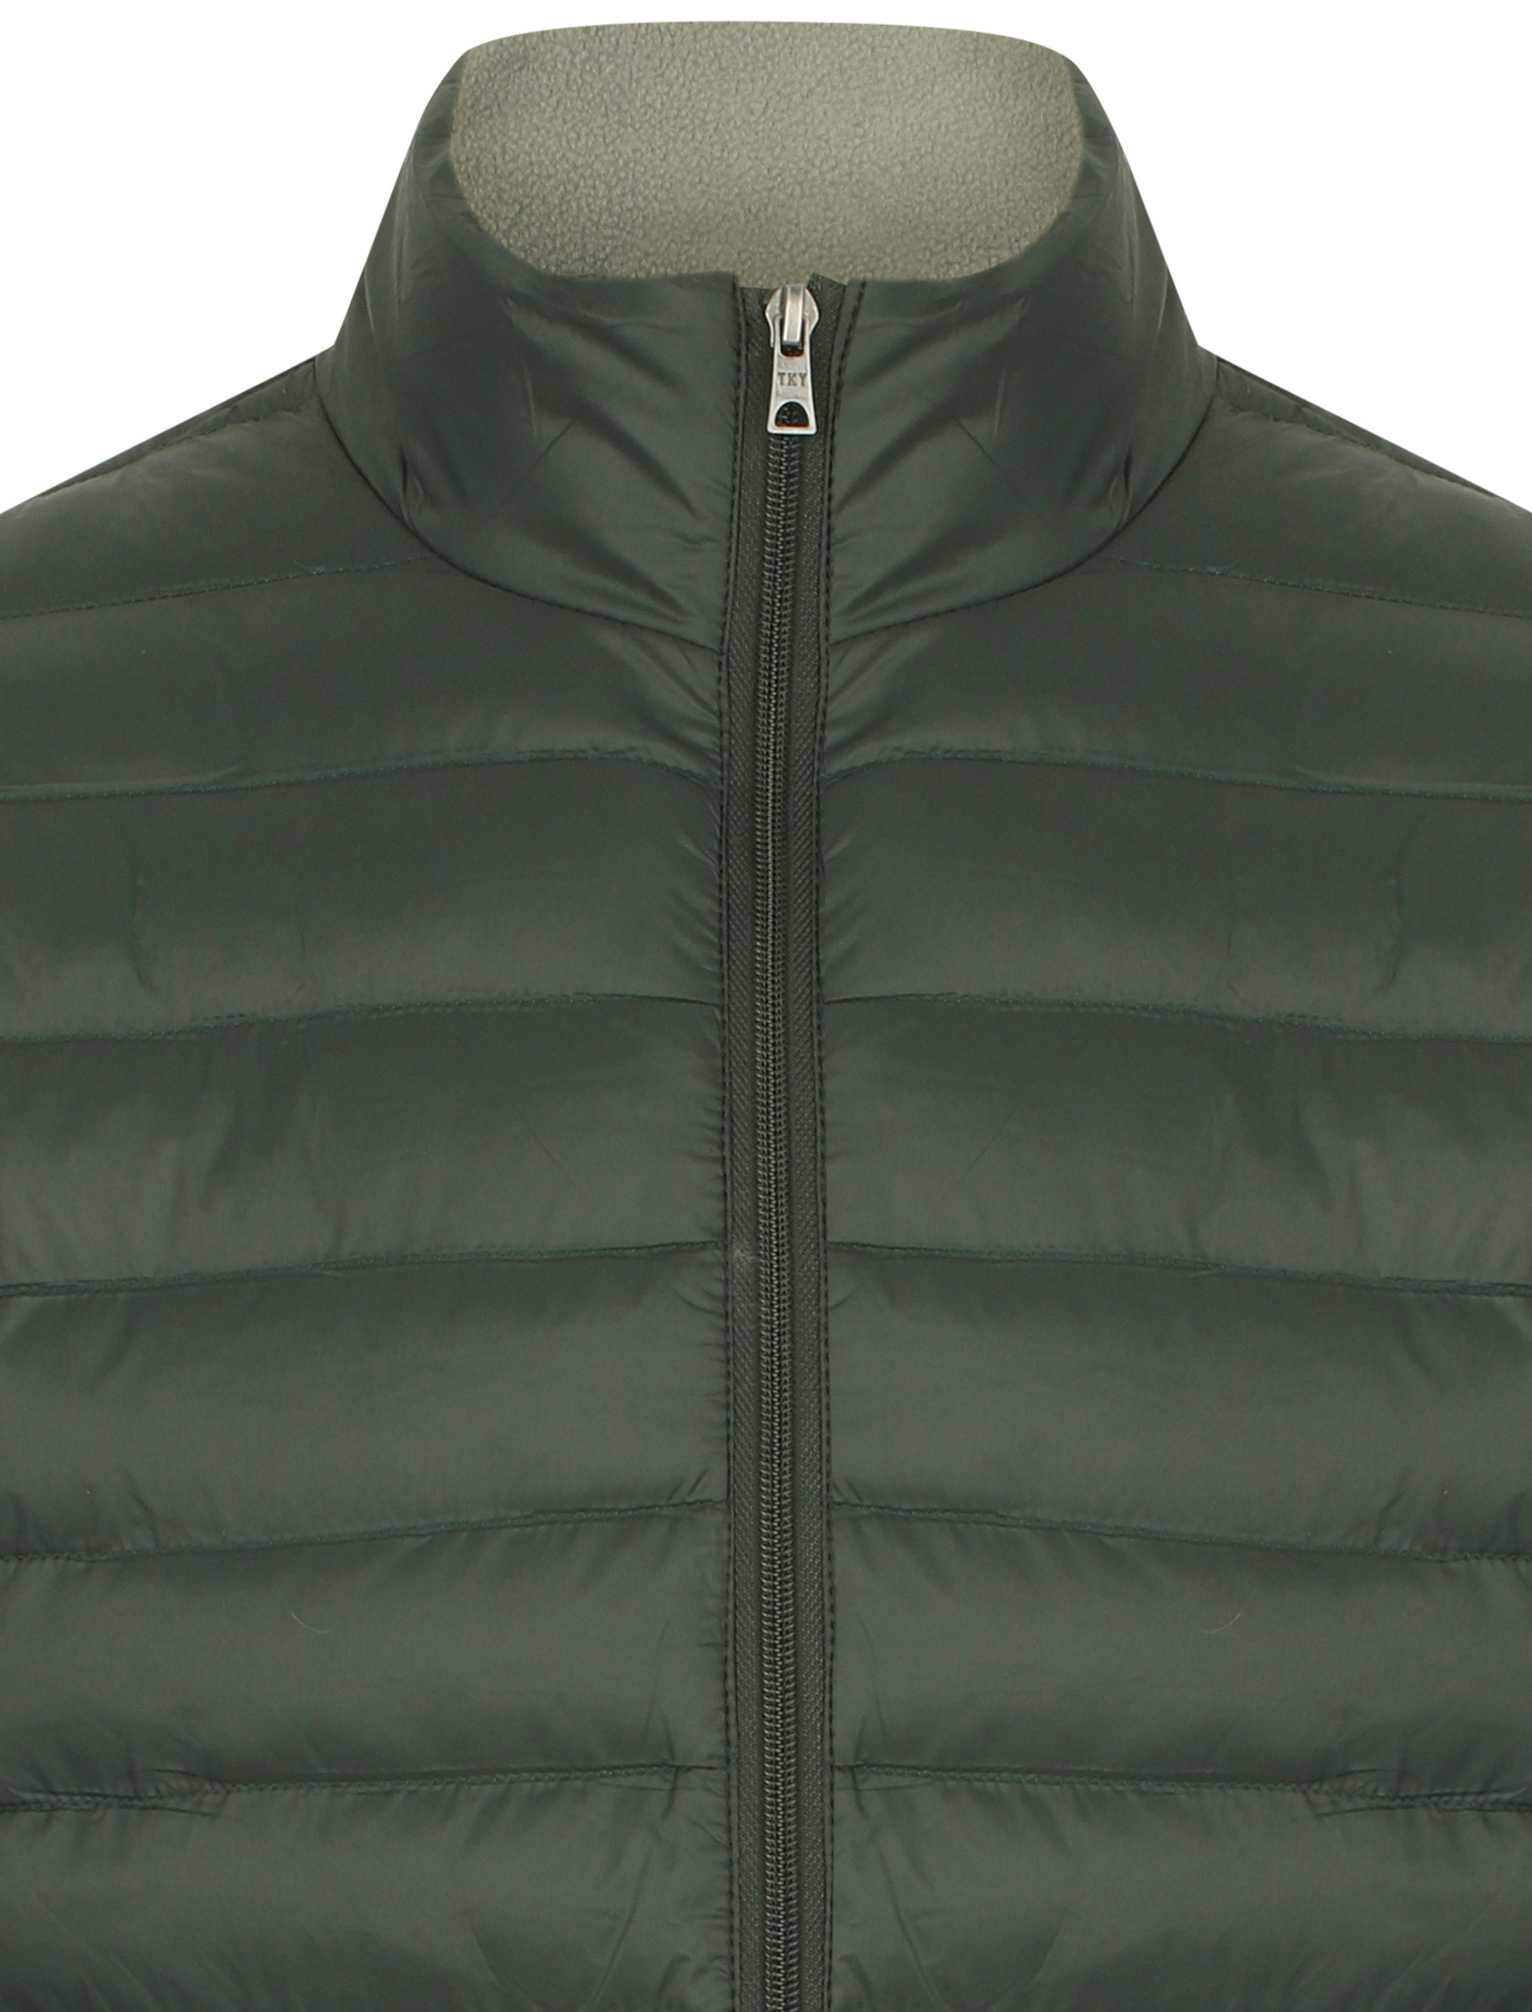 Tokyo-Laundry-Men-039-s-Bakman-Plain-Quilted-Padded-Puffer-Bubble-Jacket thumbnail 15